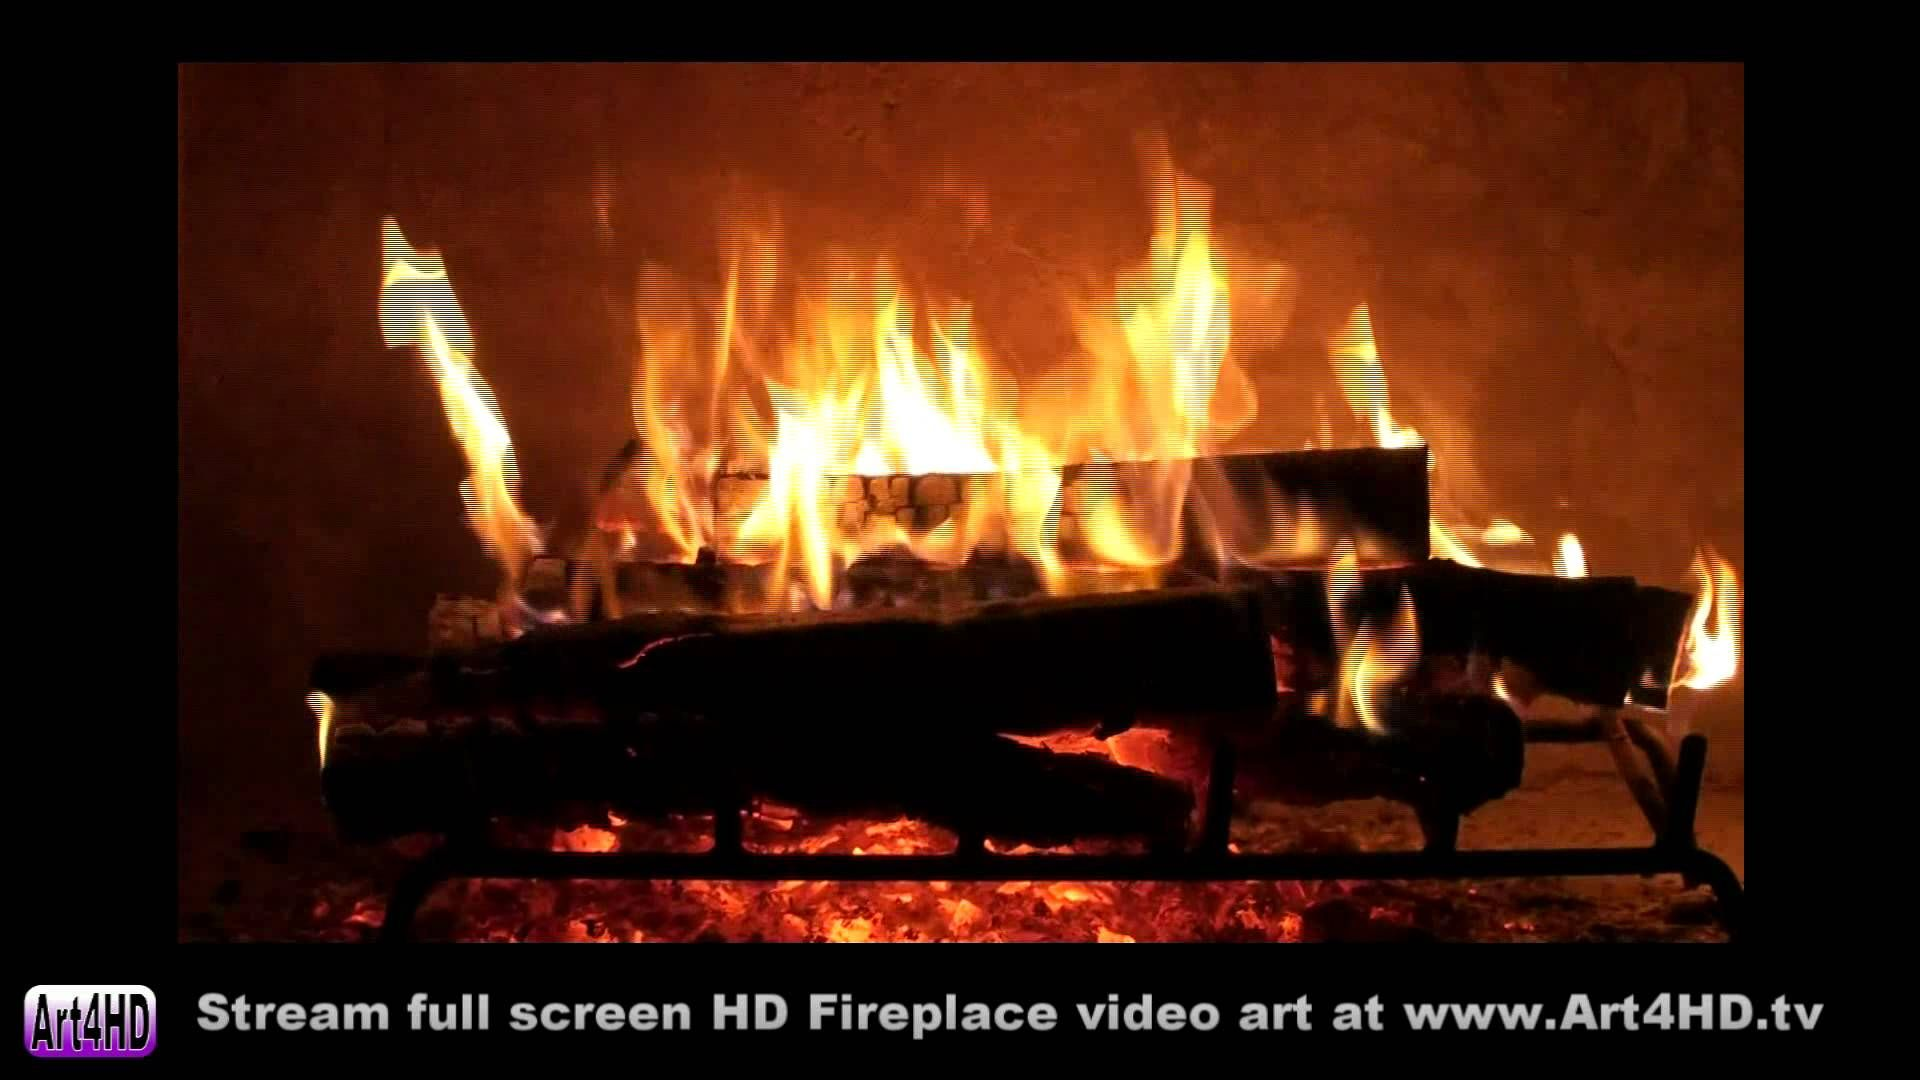 Live Screensavers Fireplace Hd 60 Minute Hd Fireplace Screensaver Art4hd 1080 Video Tv Art Youtube Fireplace Screensaver Fireplace Video Fire Screensaver